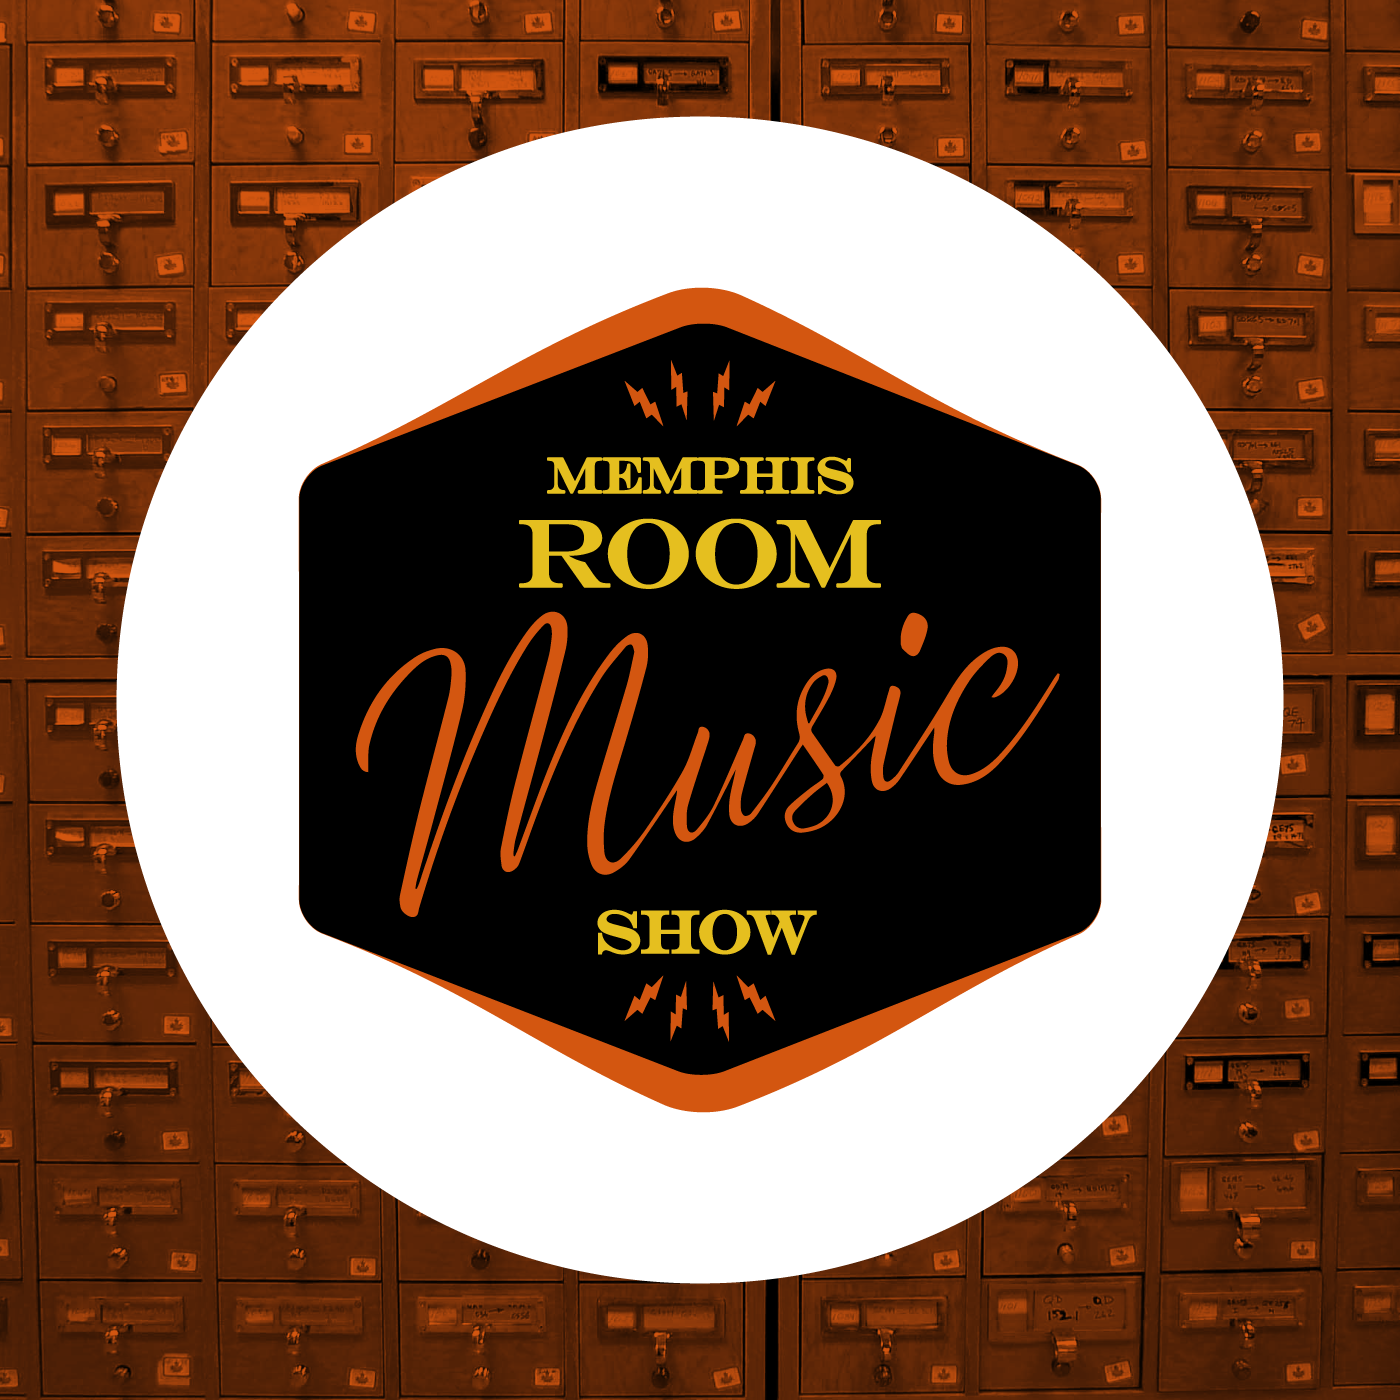 Memphis Room Music Show The OAM Network